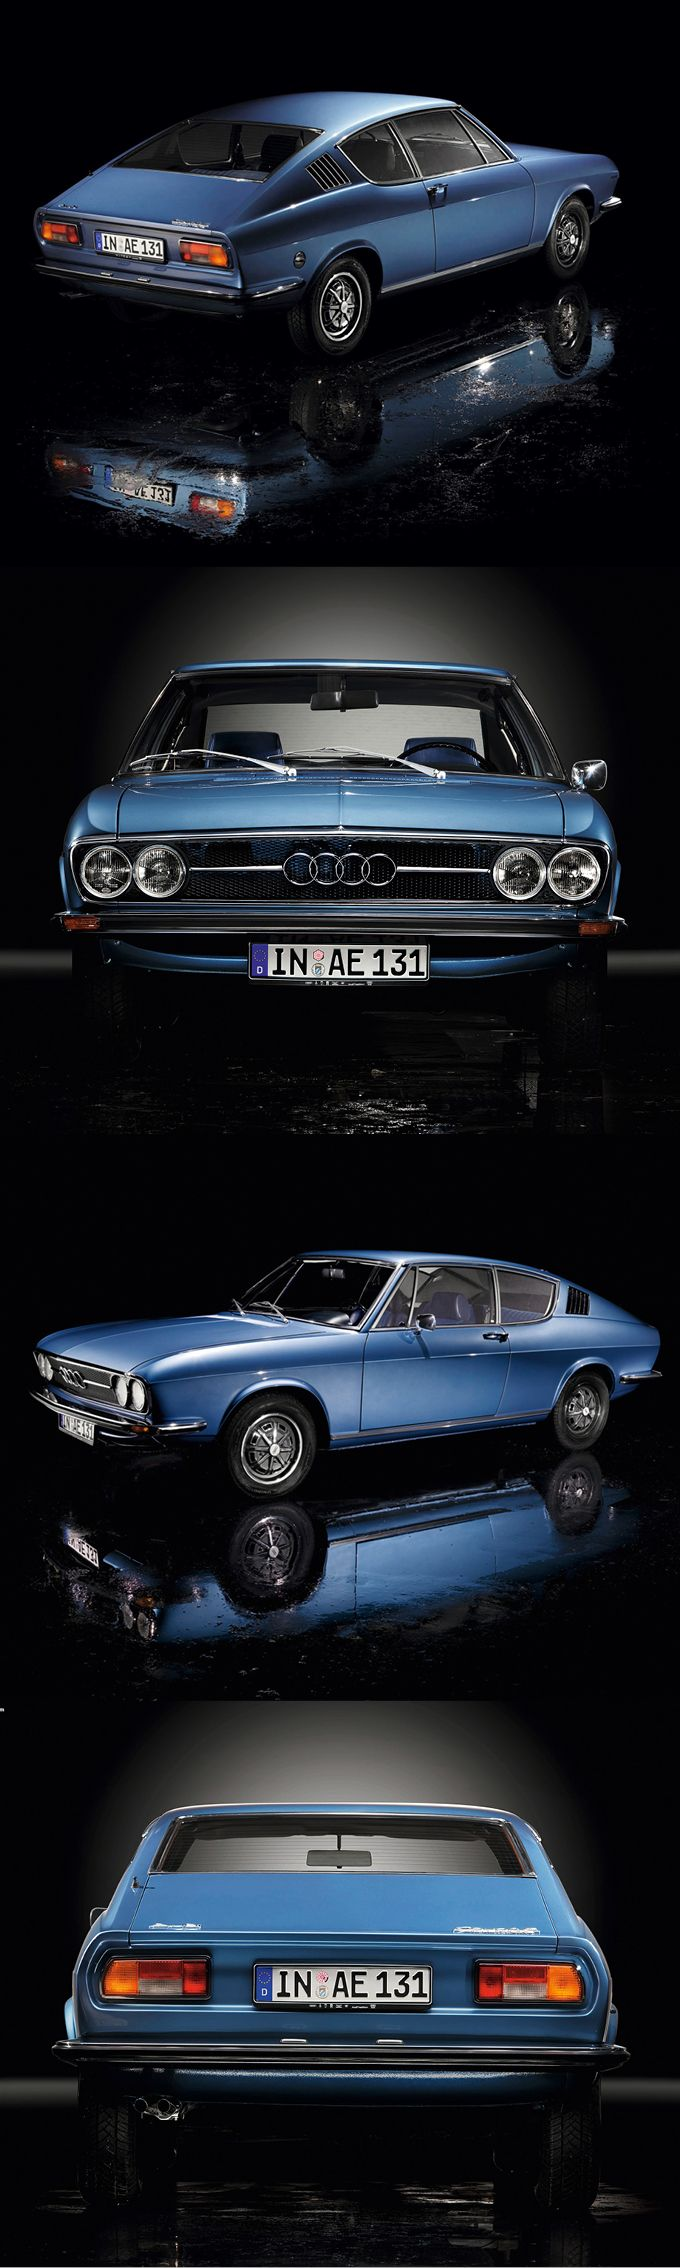 1970 Audi 100 Coupé S / blue / Germany / photography: Pedro Mota / 17-311 https://www.amazon.com/Kingseye-Engineering-Construction-Educational-Excavator/dp/B075C1PX6Y